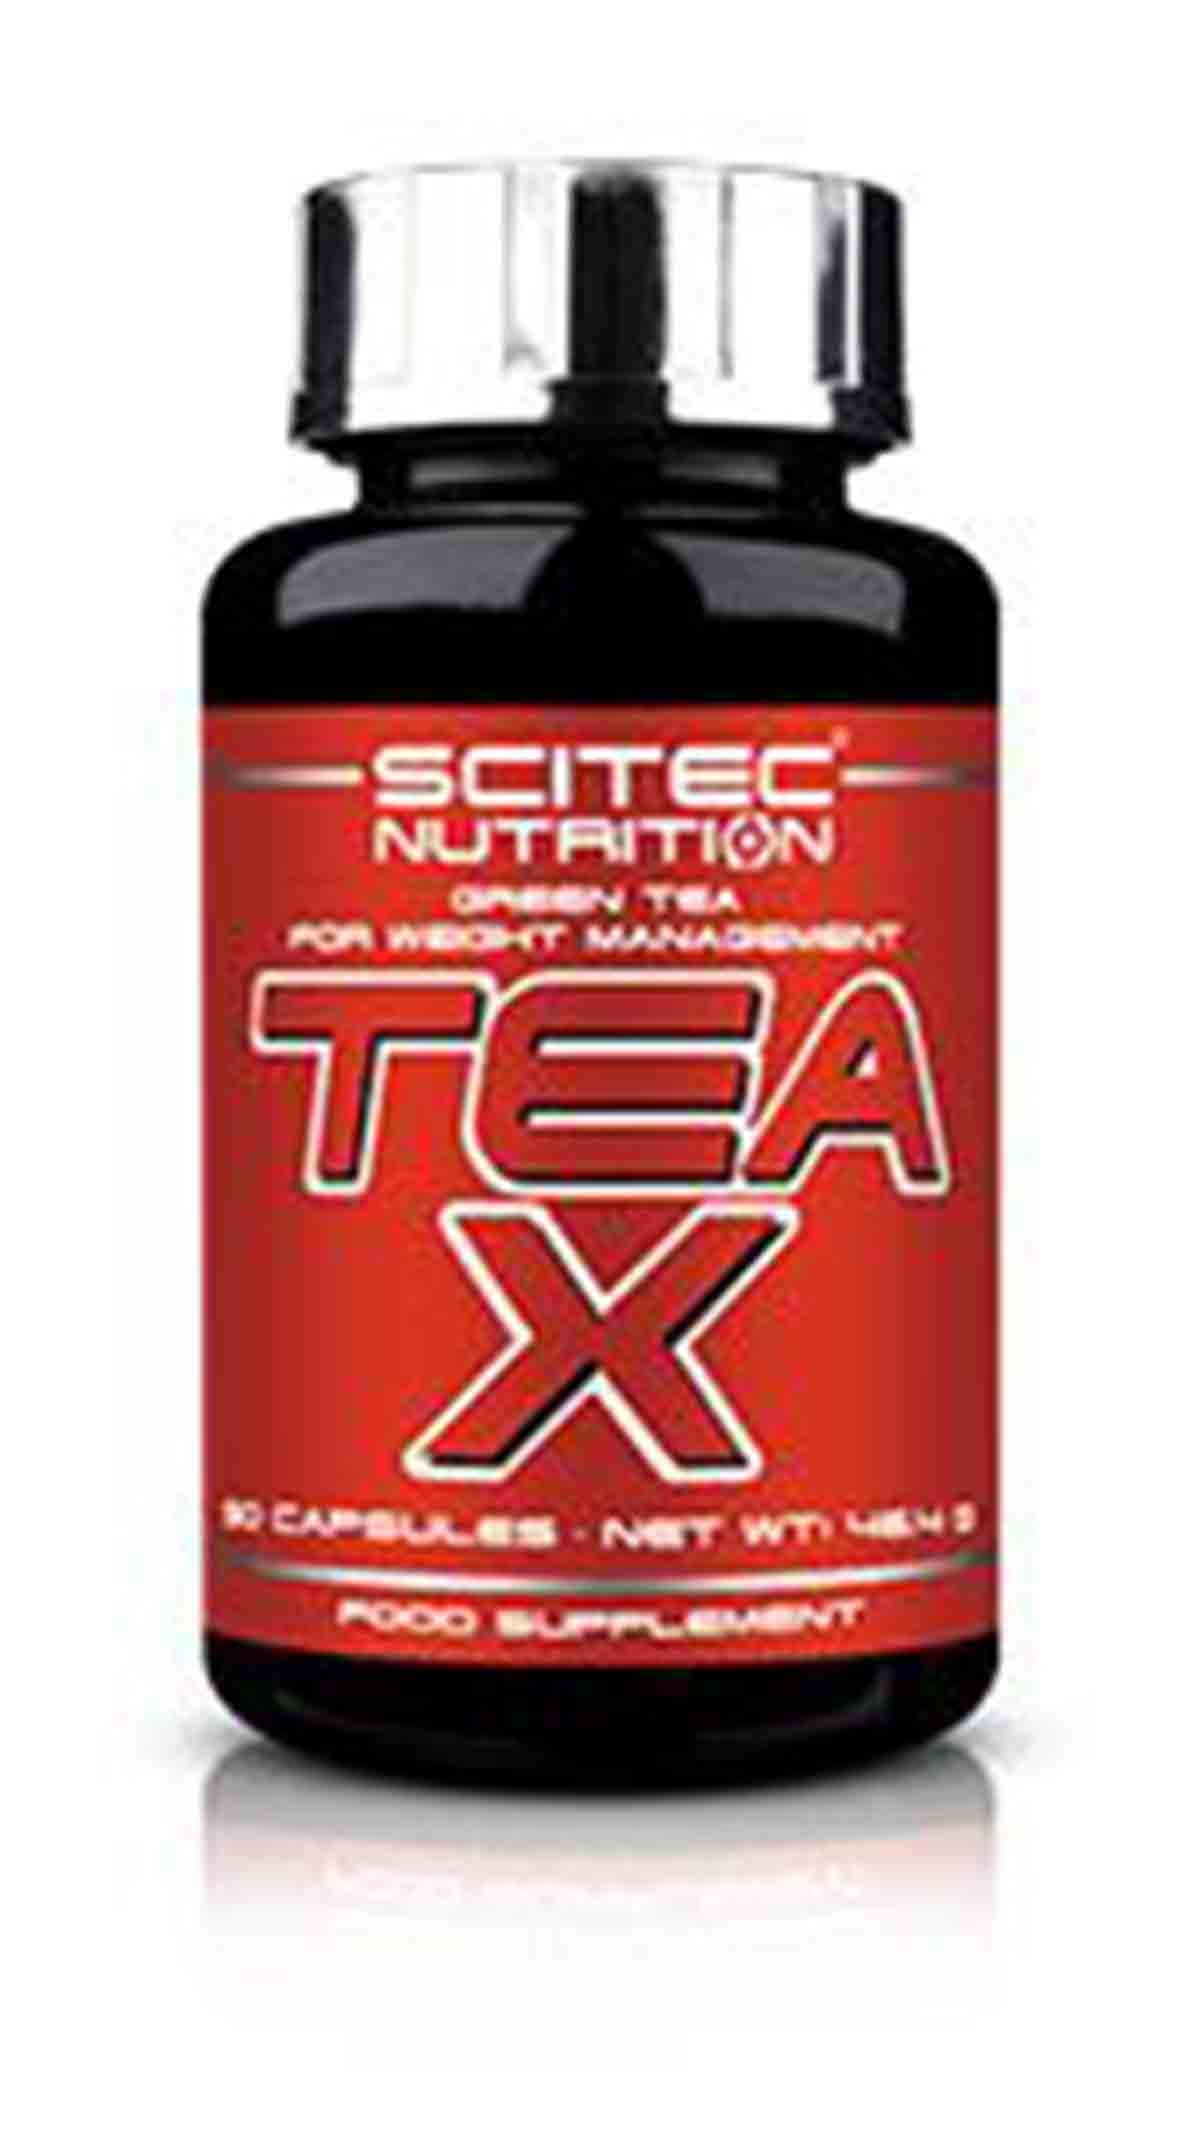 SciTec Nutrition Tea X